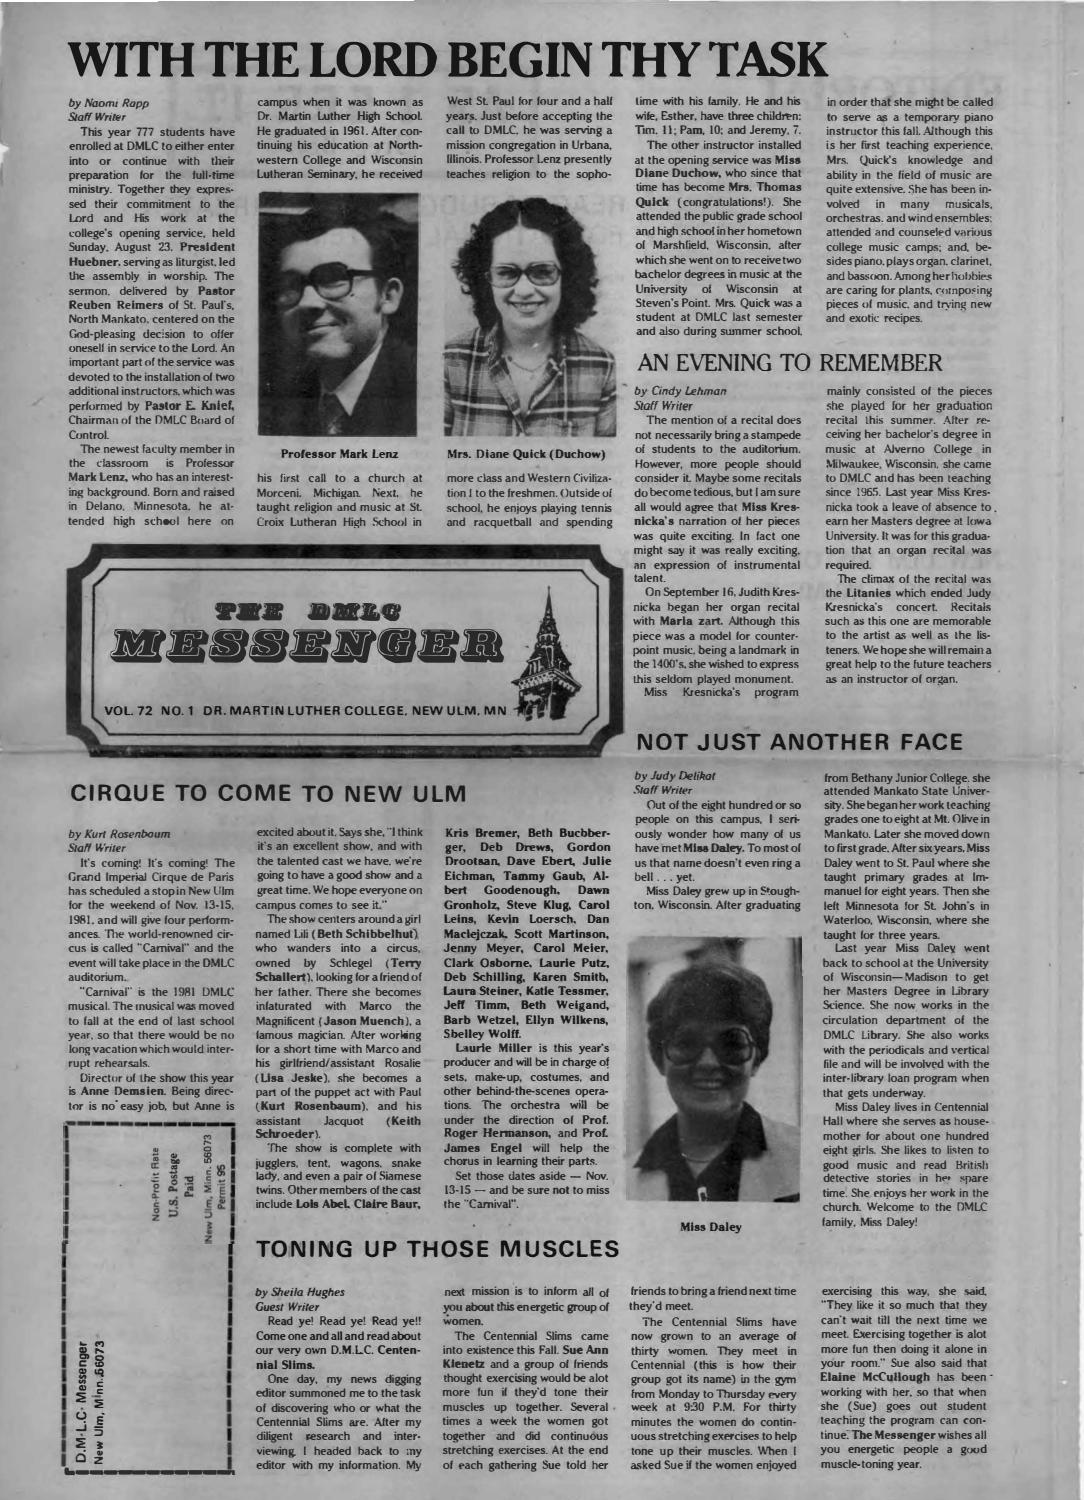 hight resolution of 1981-1982 DMLC Messenger Vol. 72 by Martin Luther College - issuu